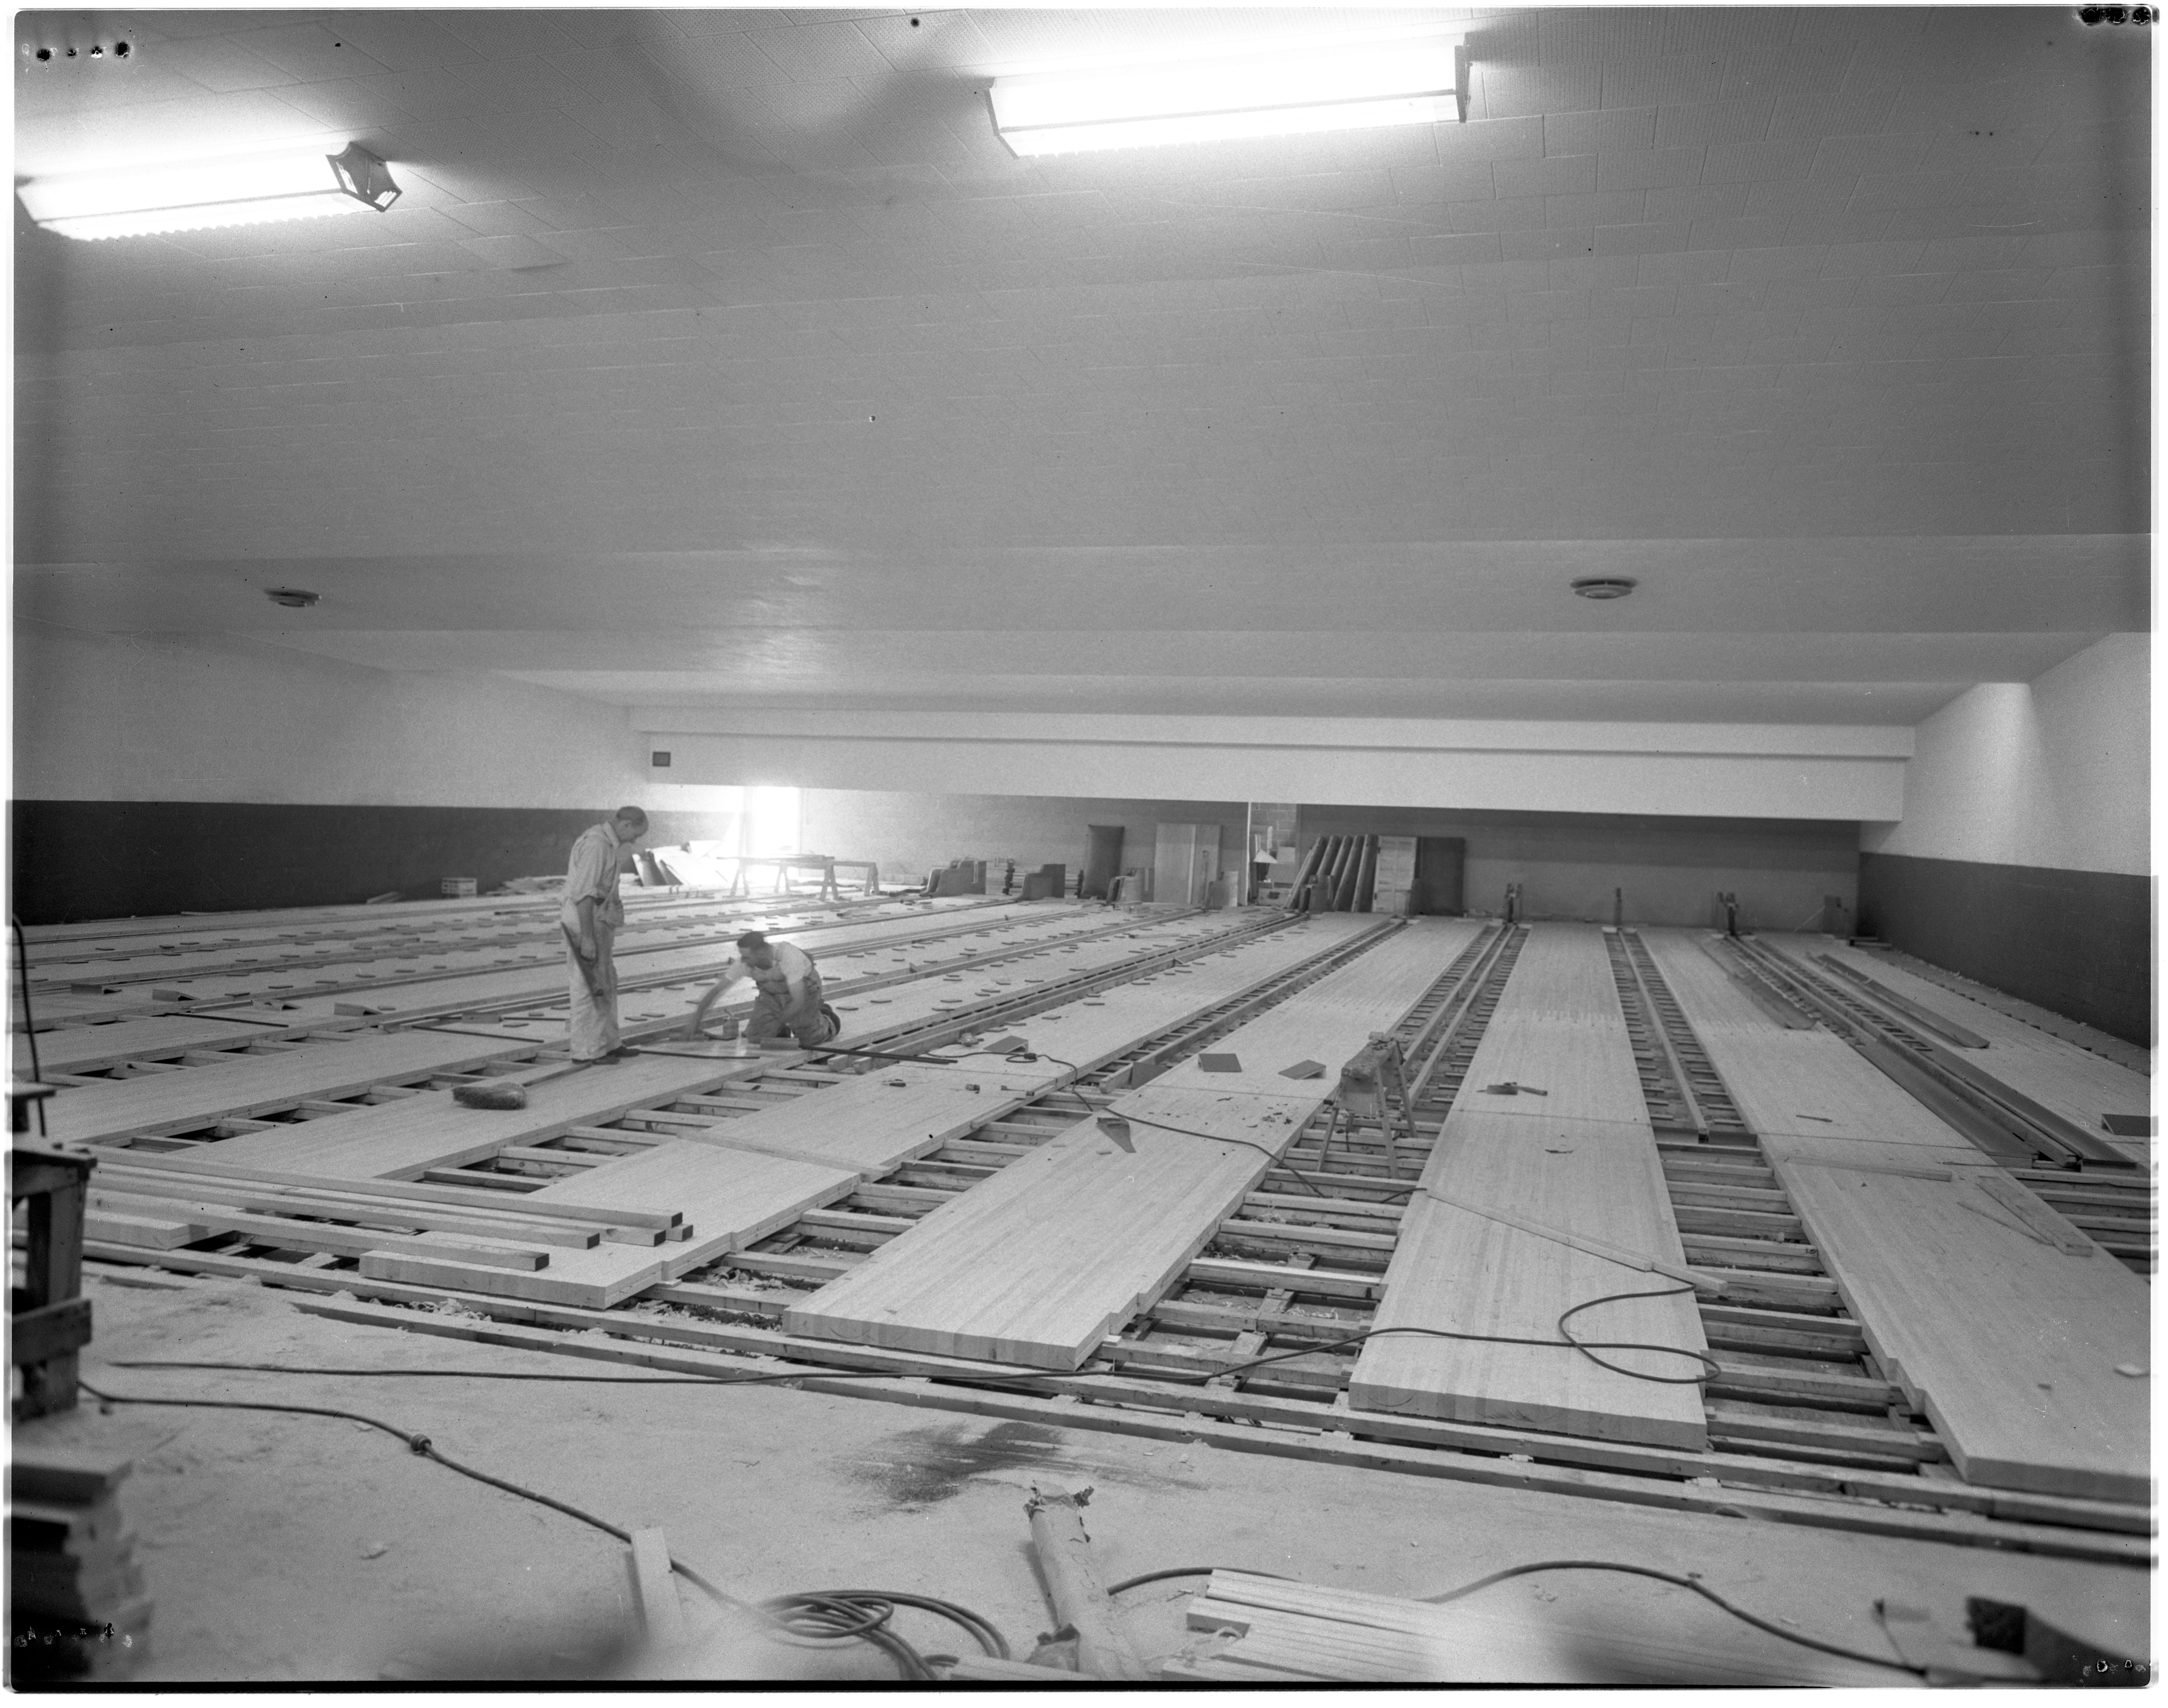 Construction of Washtenaw Lanes Bowling Alley, August 1949 image